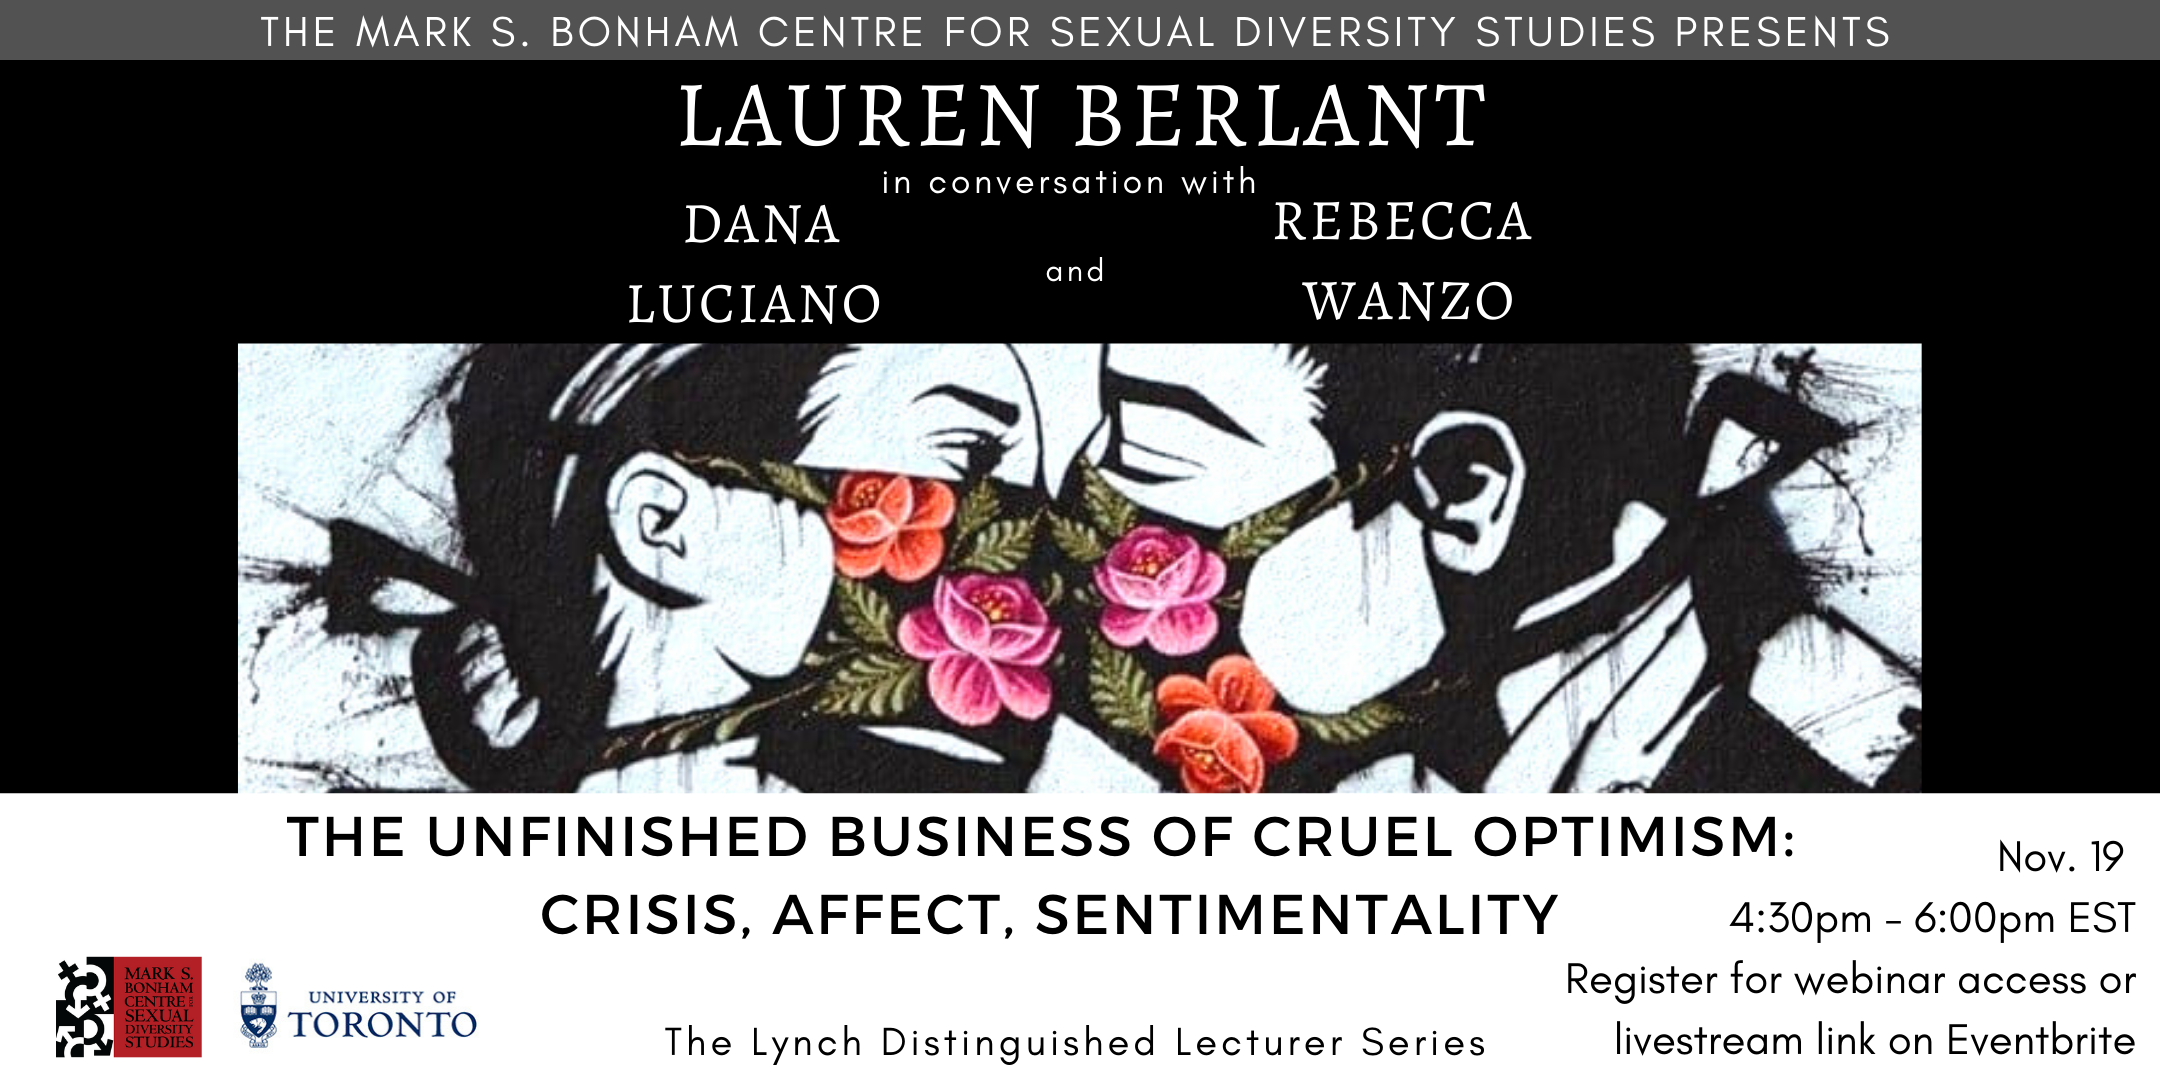 The Lynch Distinguished Lecturer Series   Lauren Berlant in Conversation with Dana Luciano and Rebecca Wanzo: The Unfinished Business of Cruel Optimism